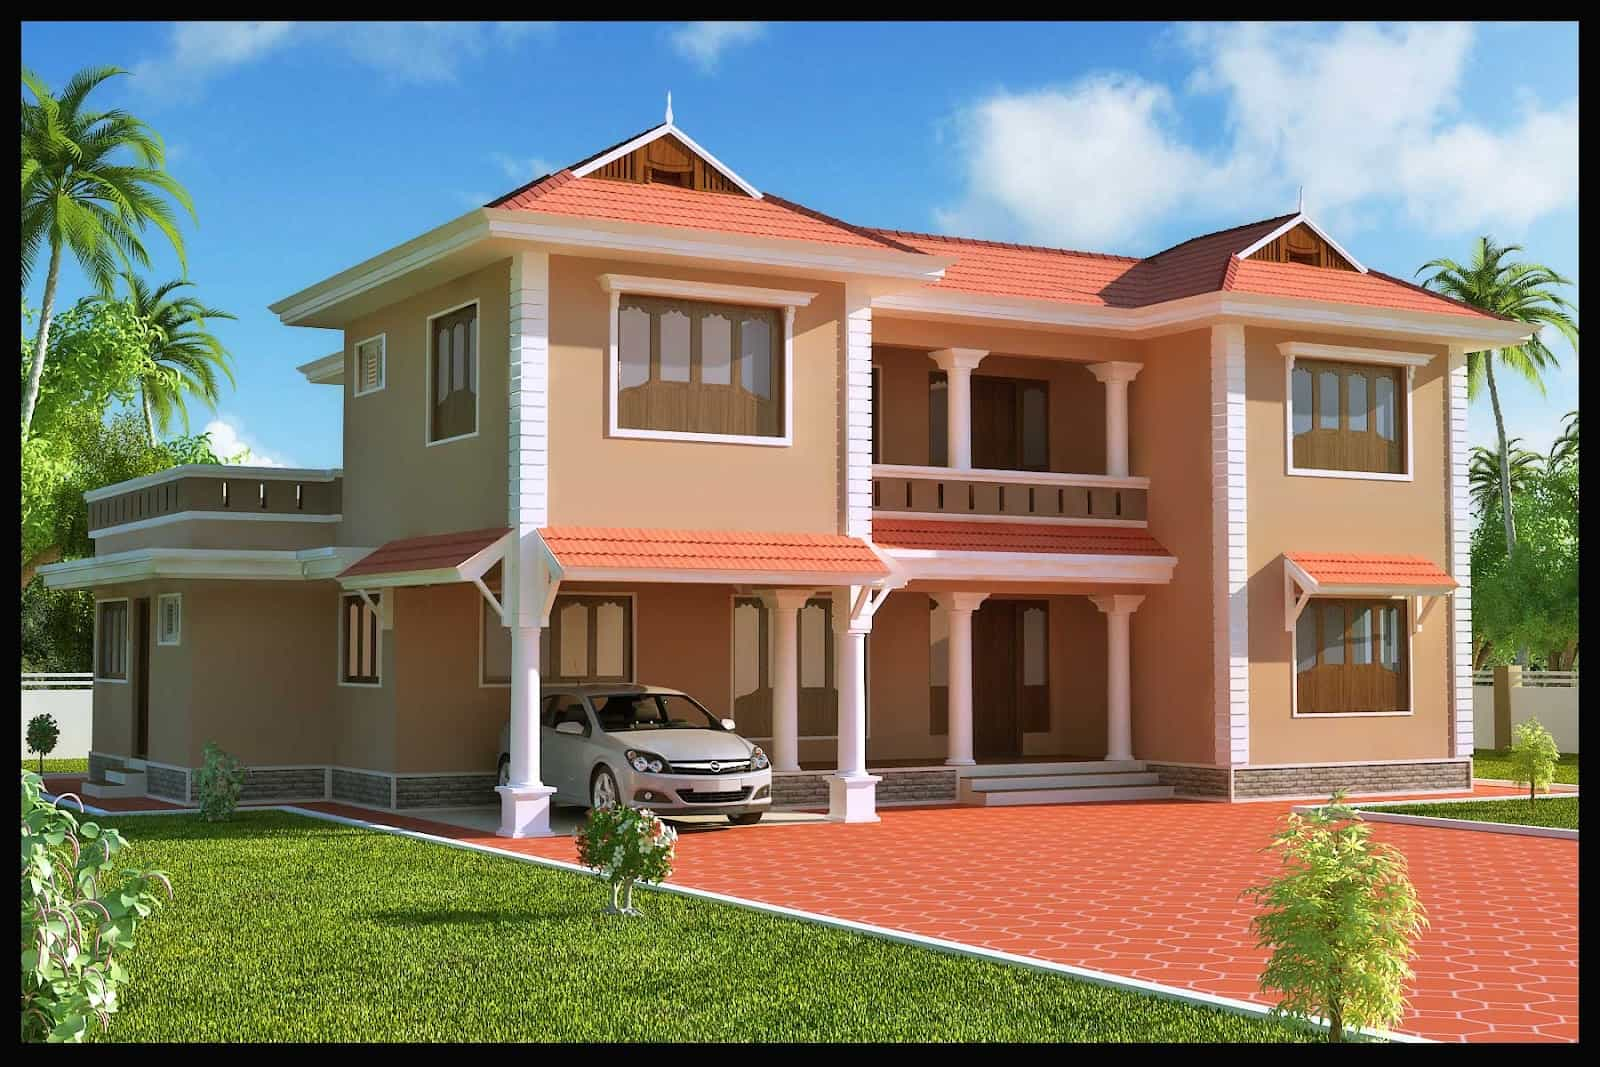 House plans kerala keralahouseplanner for Exterior house designs indian style